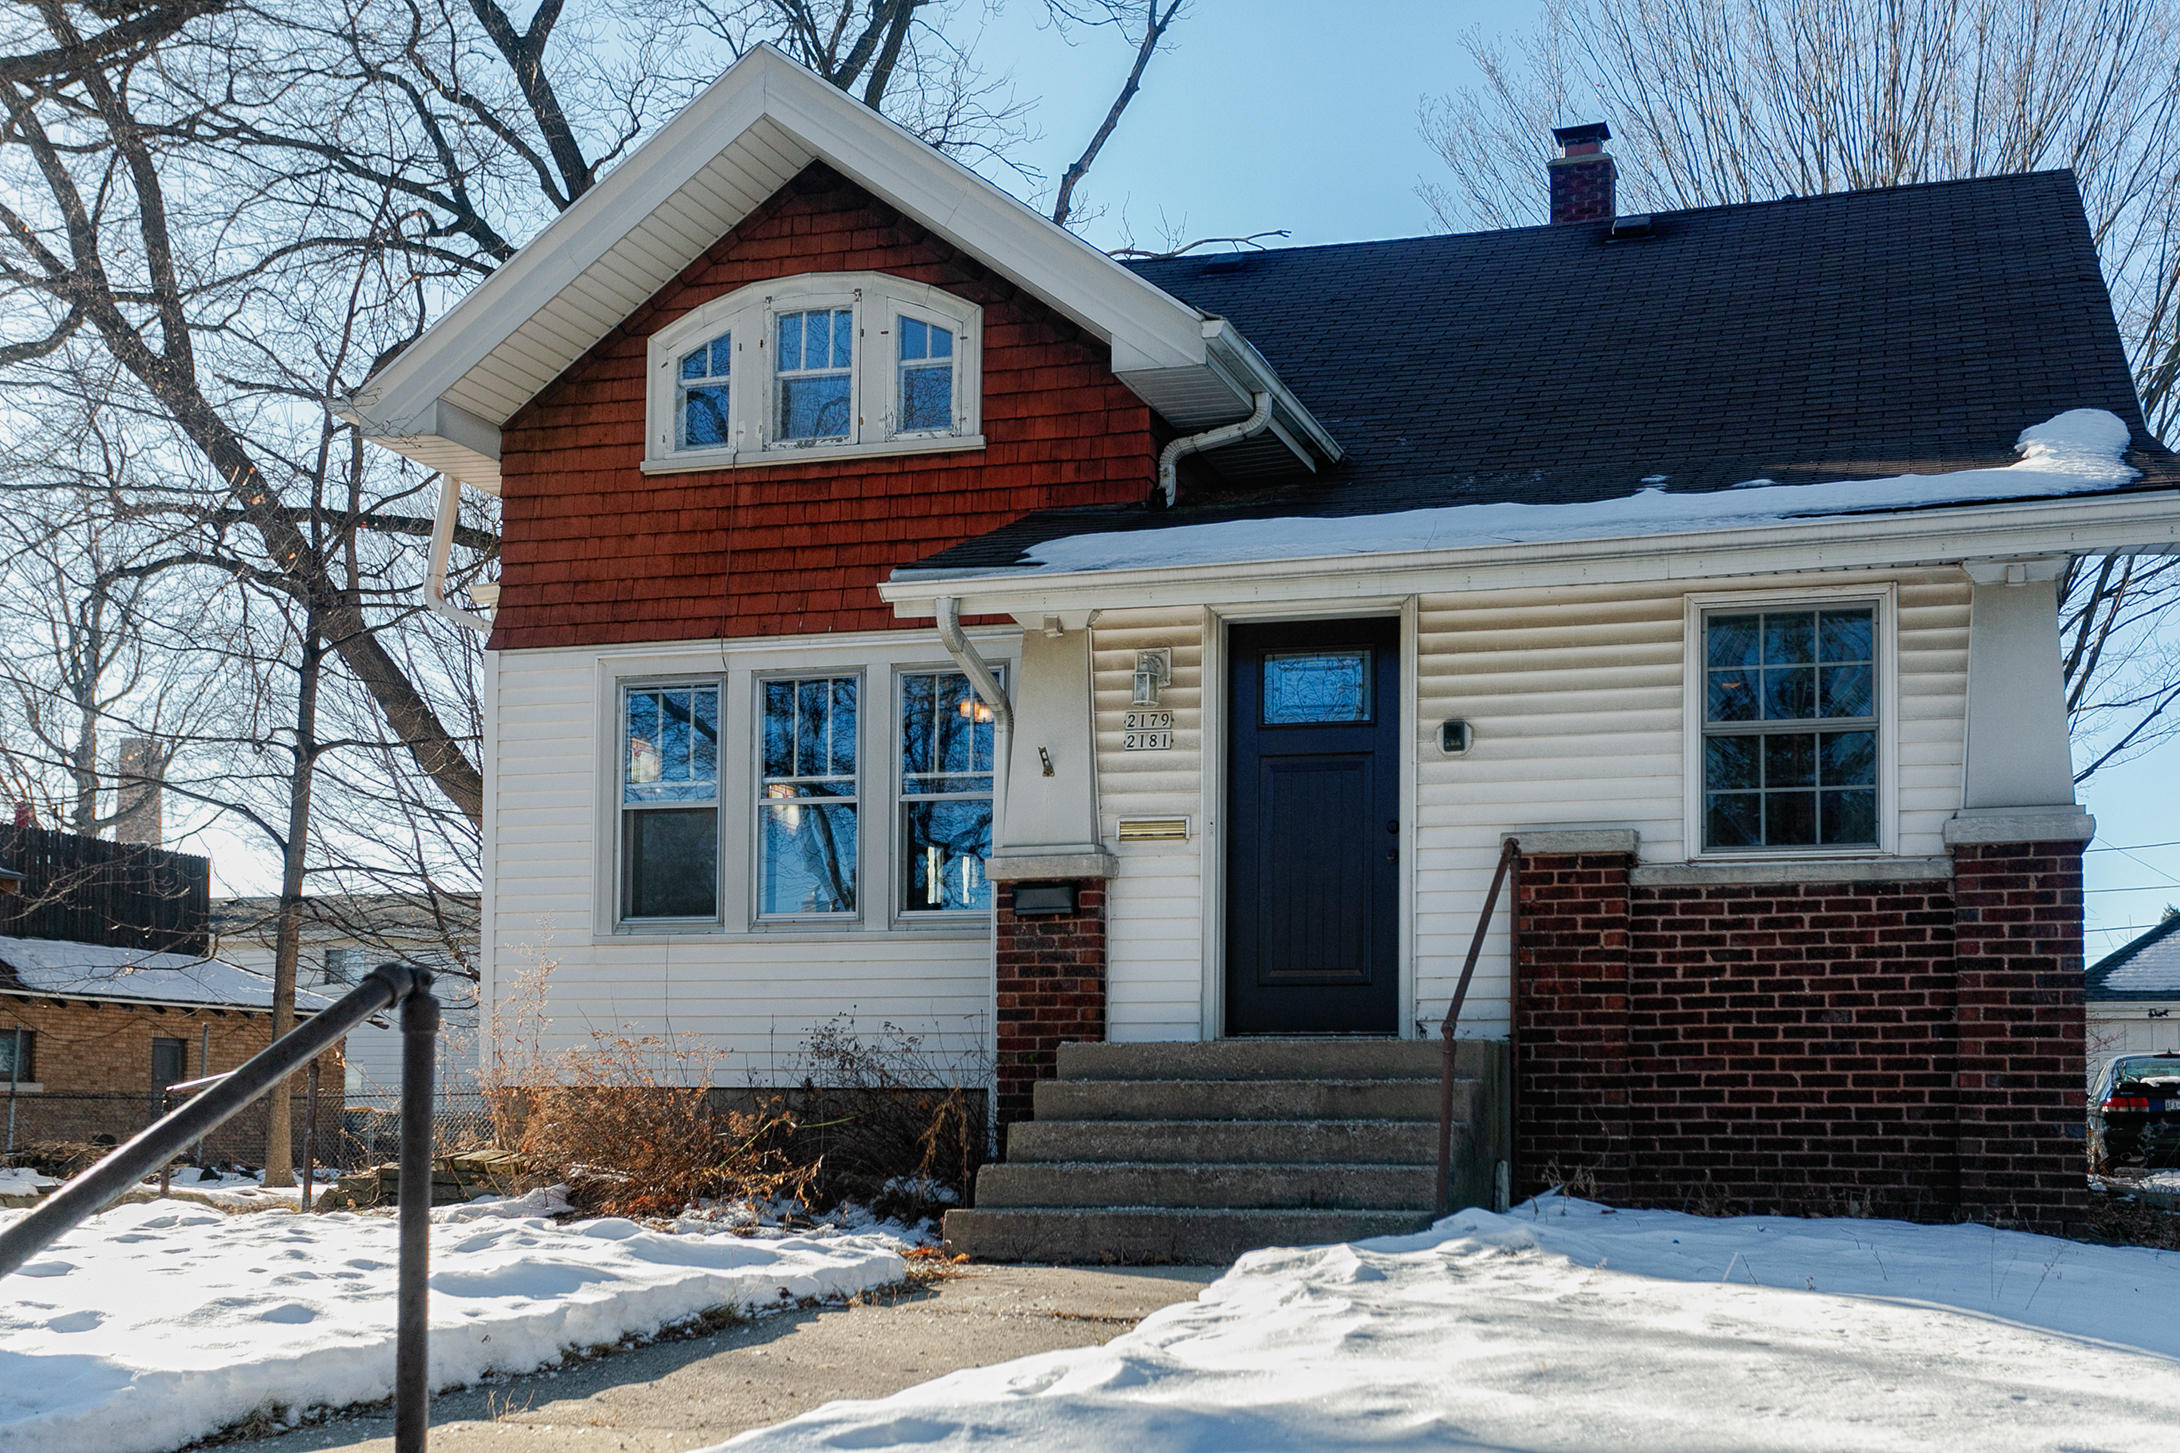 2179 84th St, West Allis, Wisconsin 53227, 2 Bedrooms Bedrooms, 6 Rooms Rooms,1 BathroomBathrooms,Two-Family,For Sale,84th St,1,1724987